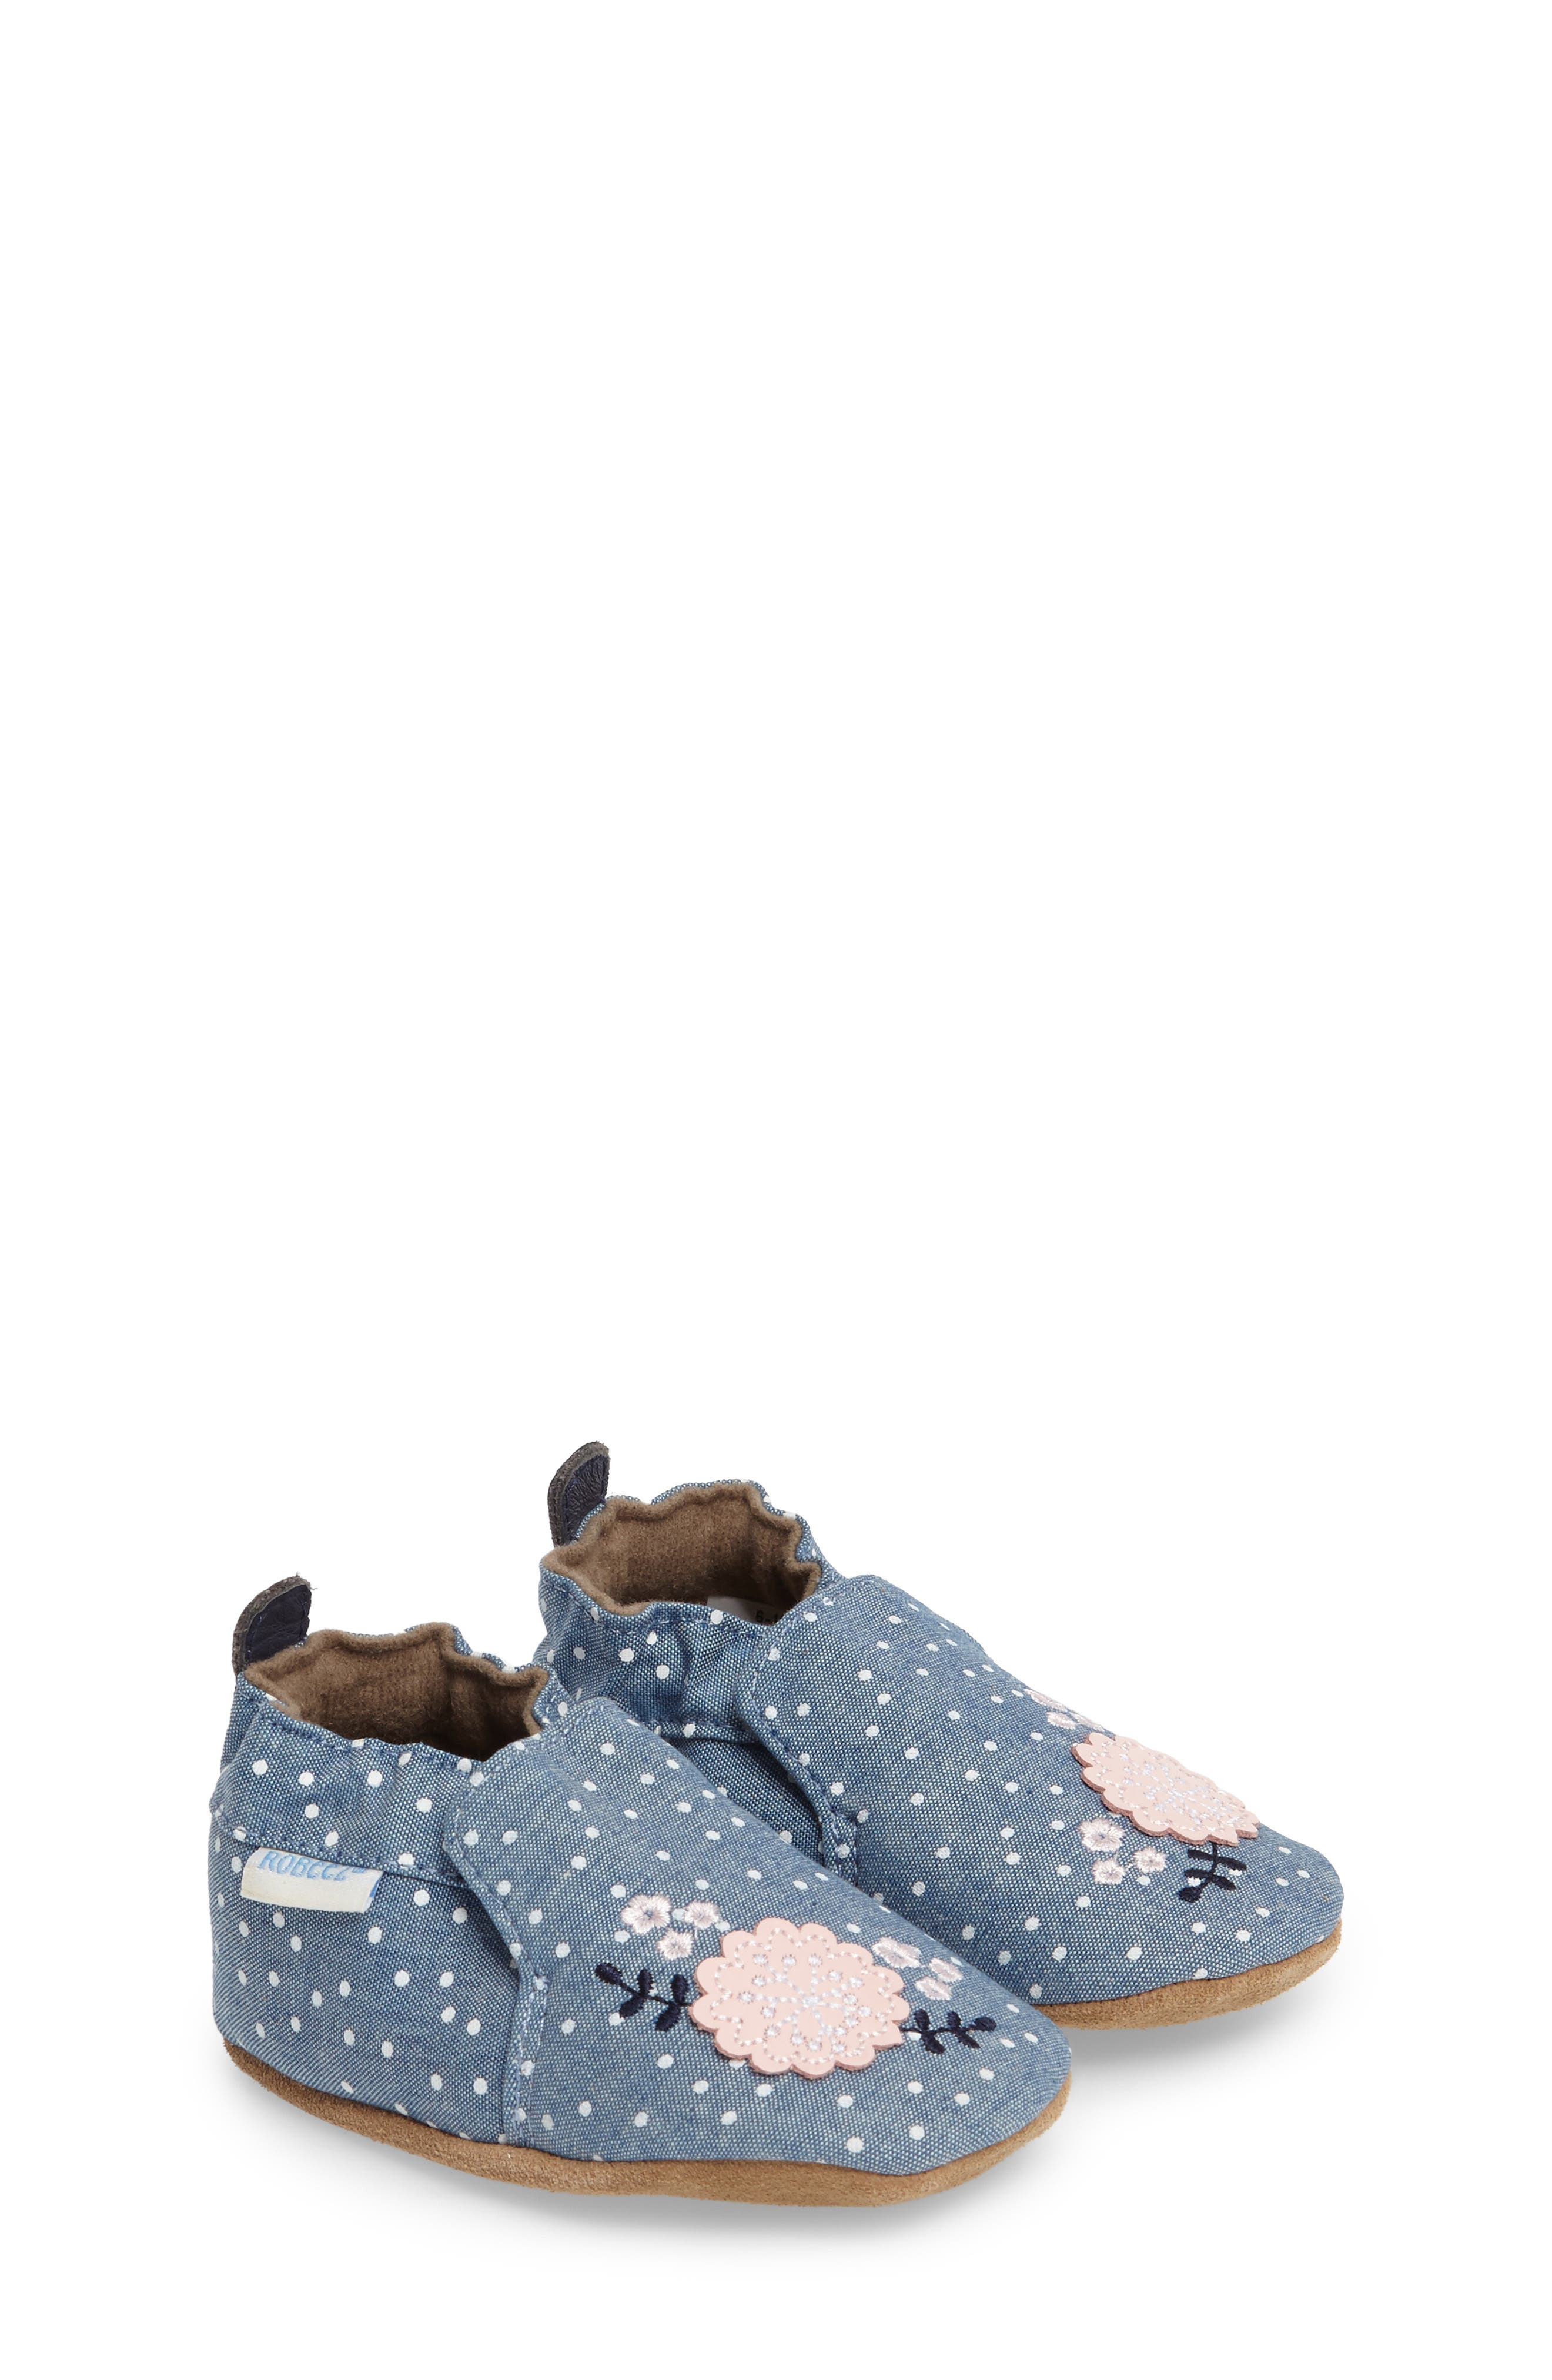 Alternate Image 1 Selected - Robeez® Chambray Bouquet Slip-On Crib Shoe (Baby & Walker)